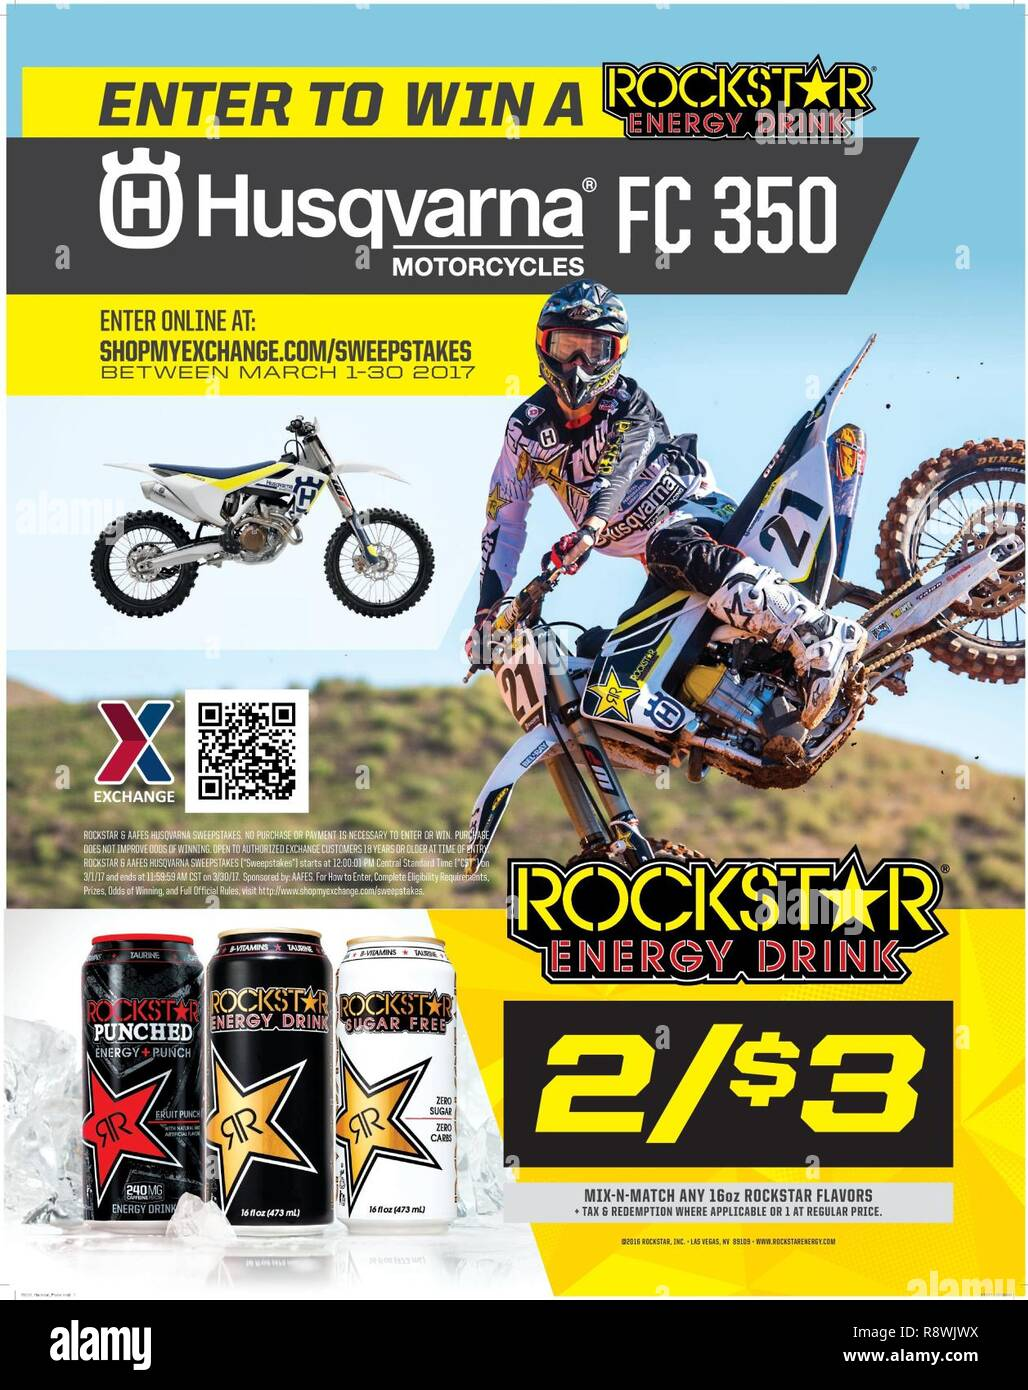 Army & Air Force Exchange Service shoppers can enter the Rockstar Motorcycle Sweepstakes March 1 through 30 for an opportunity to win a Rockstar Husqvarna FC 350 motorcycle, valued at $9,299. - Stock Image